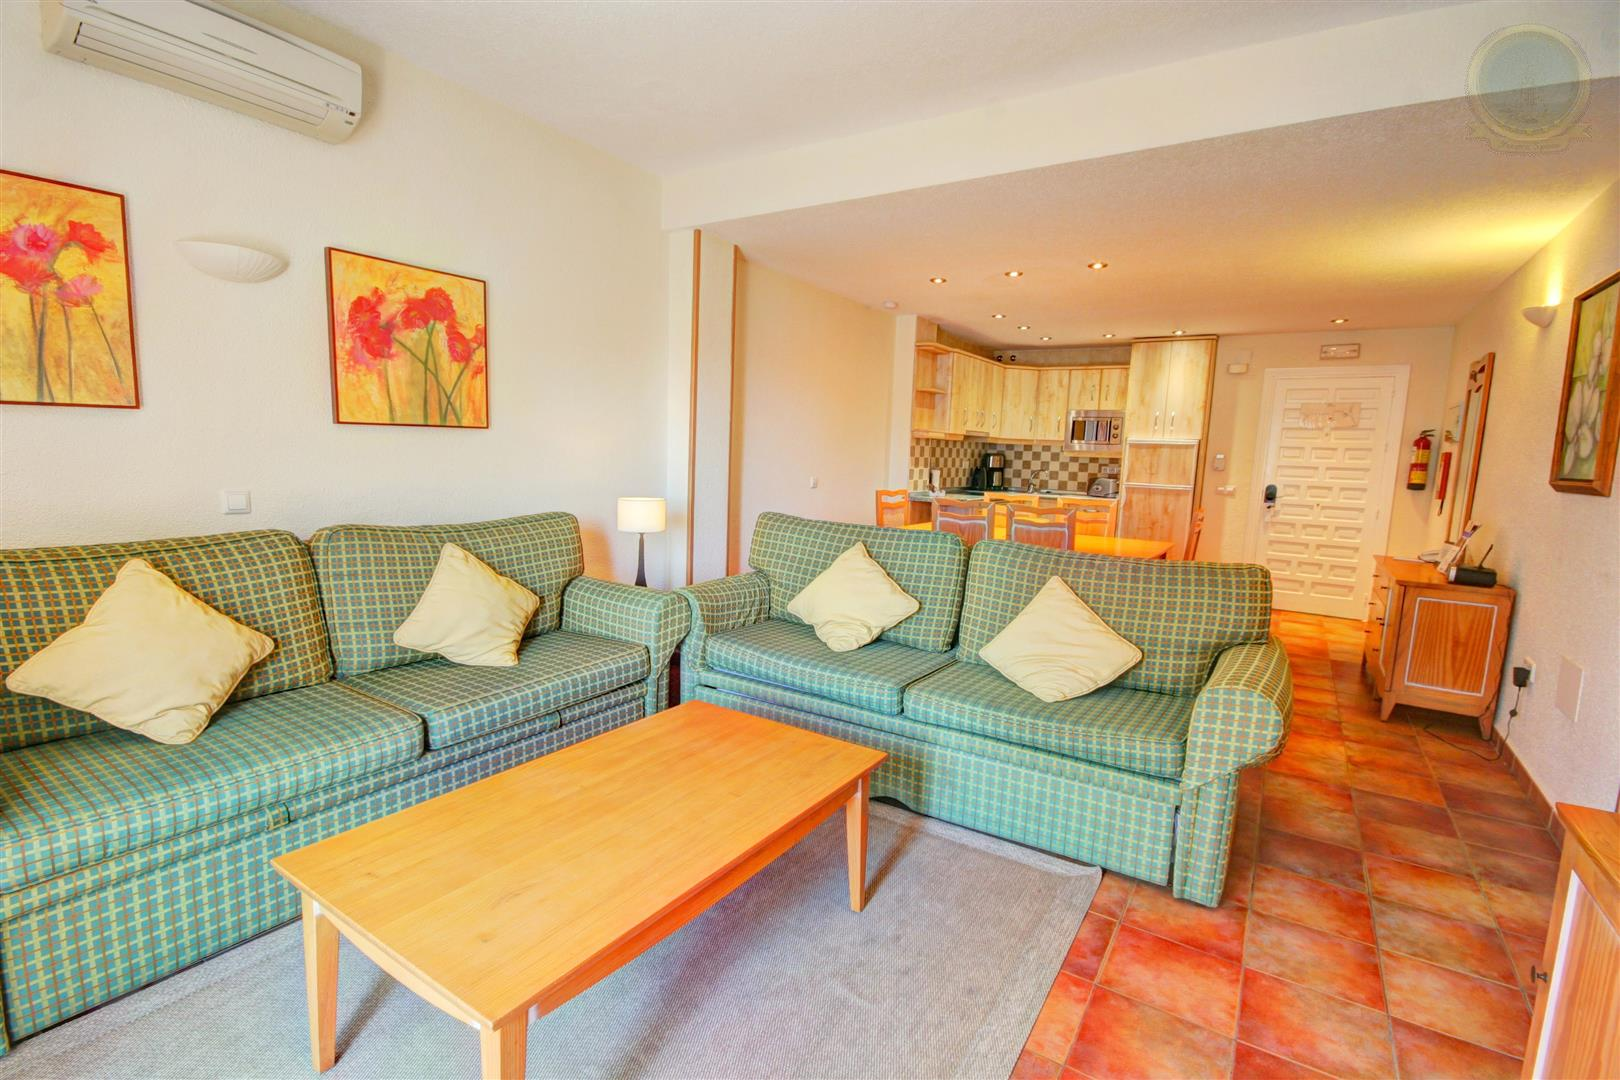 apartment for rent in Benal Beach Benalmadena - Lounge Area